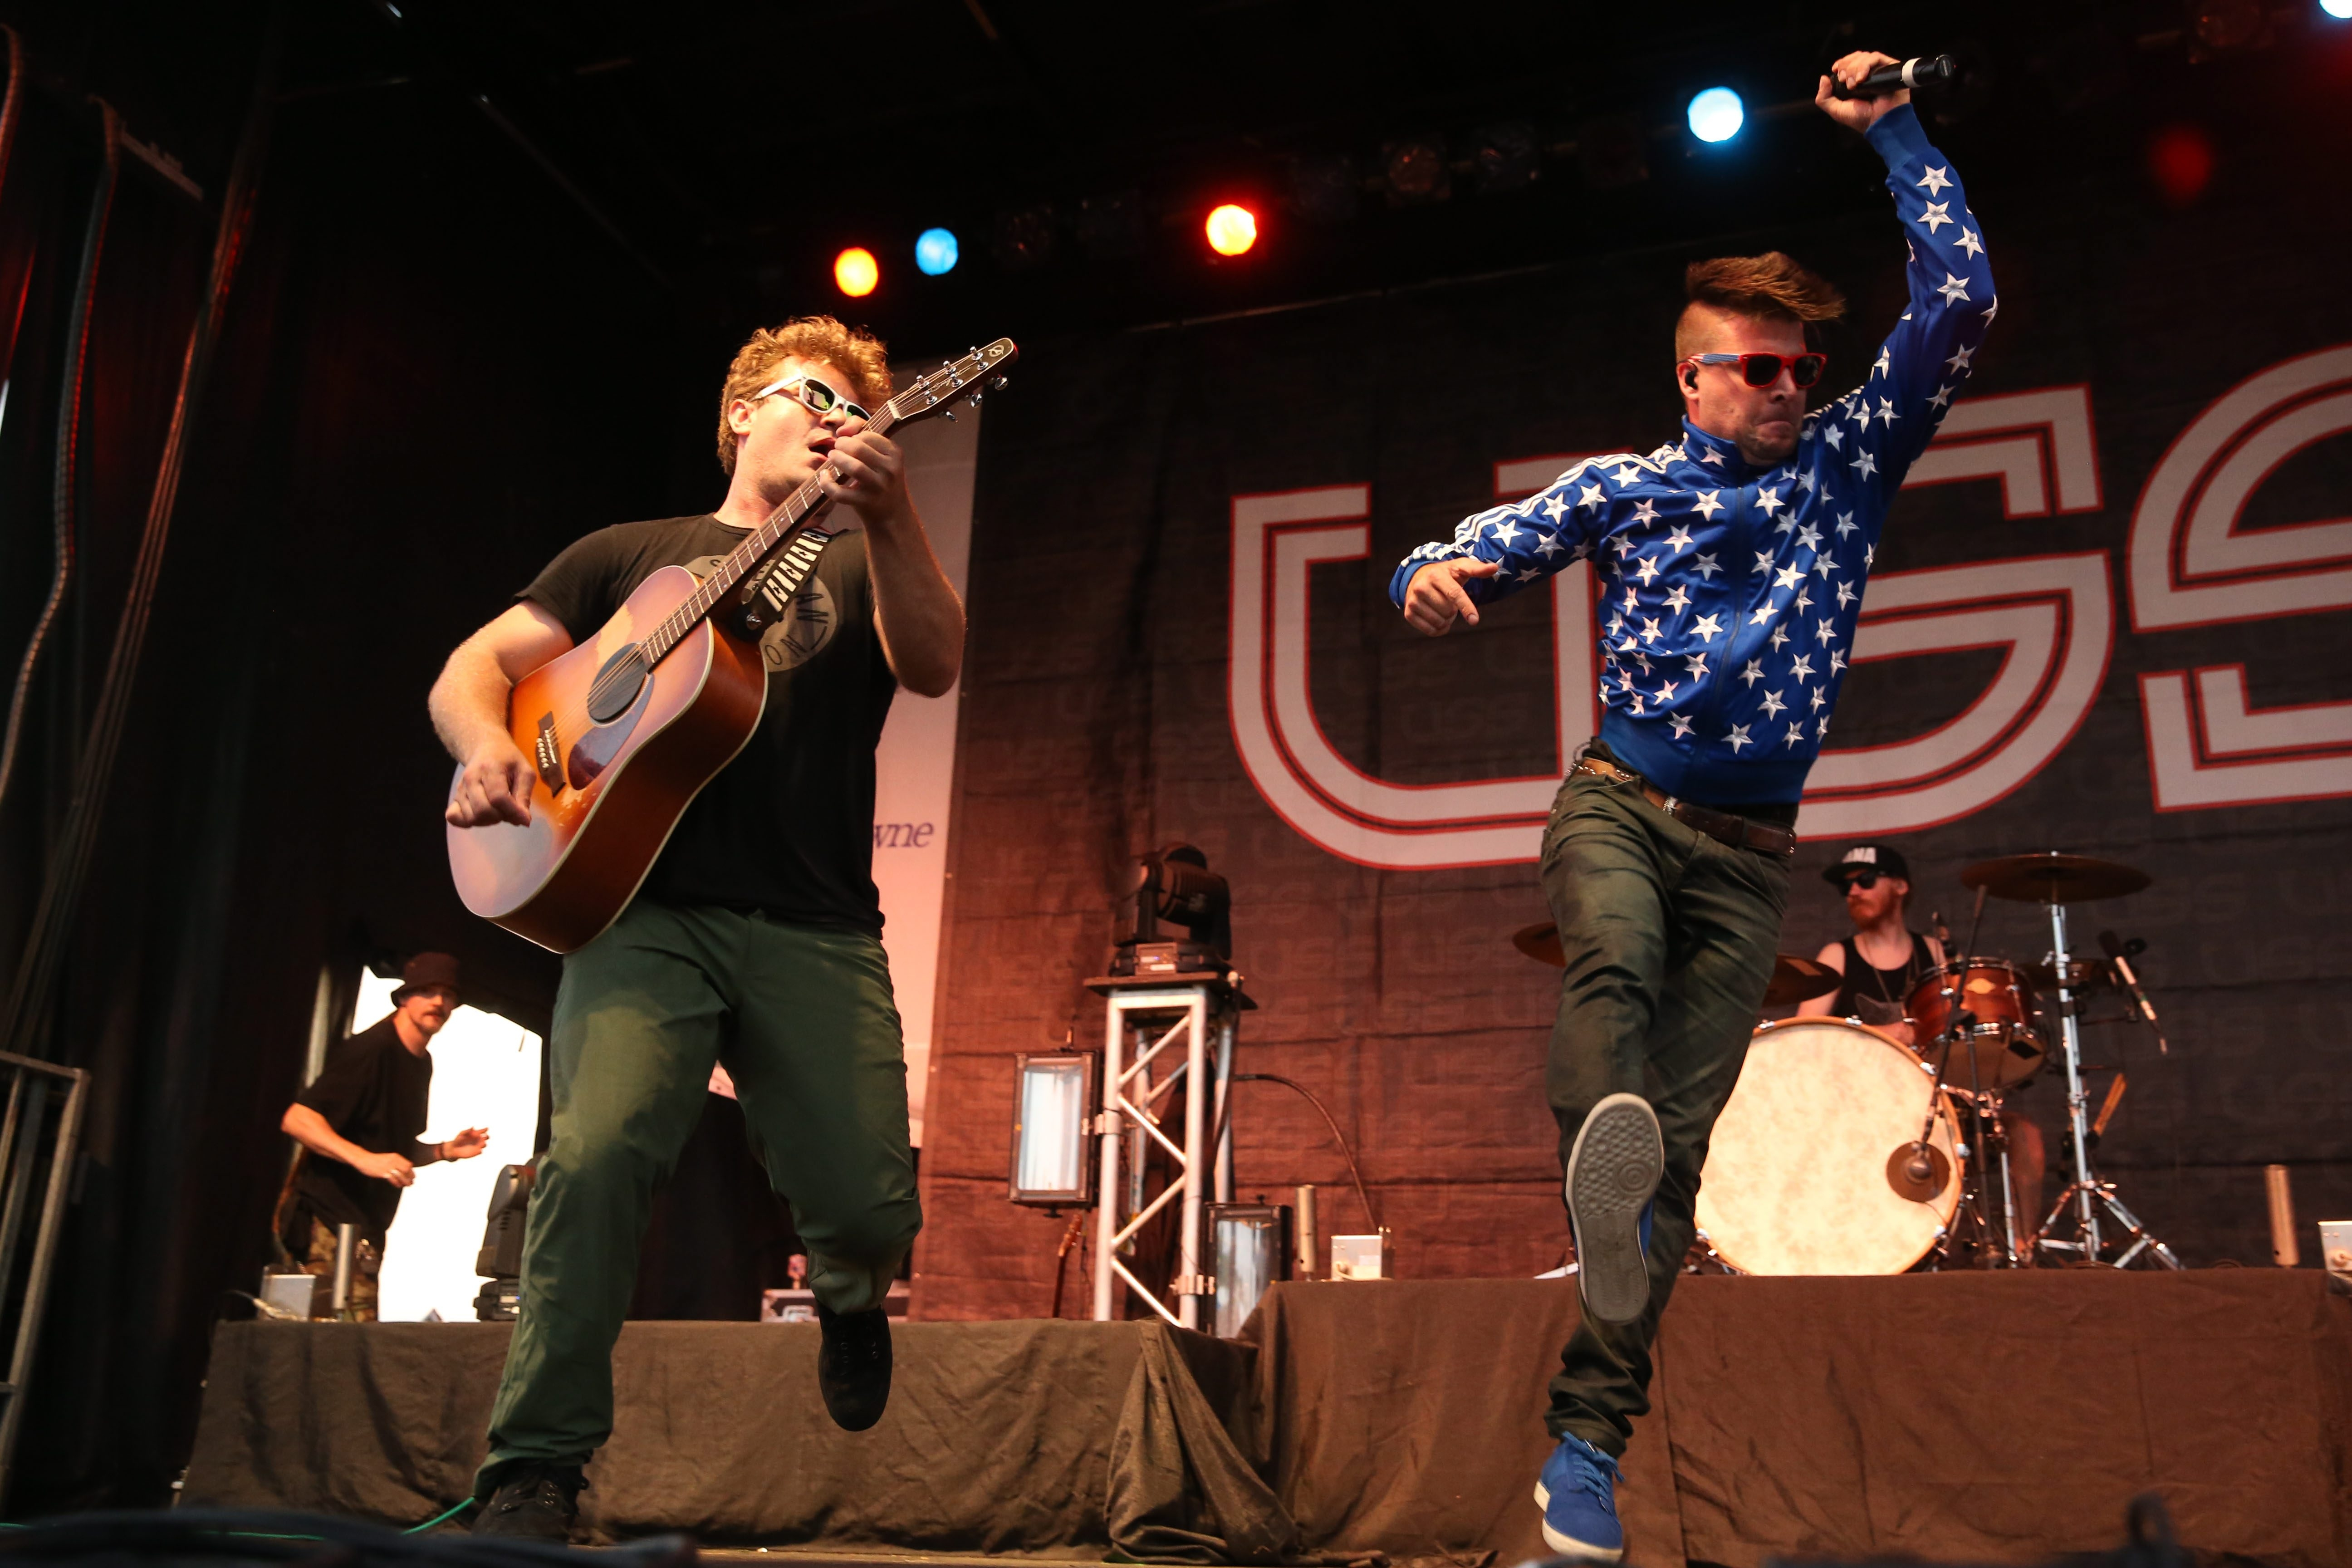 The high-energy duo USS returns for a show at Rapids Theatre. (Sharon Cantillon/file photo)